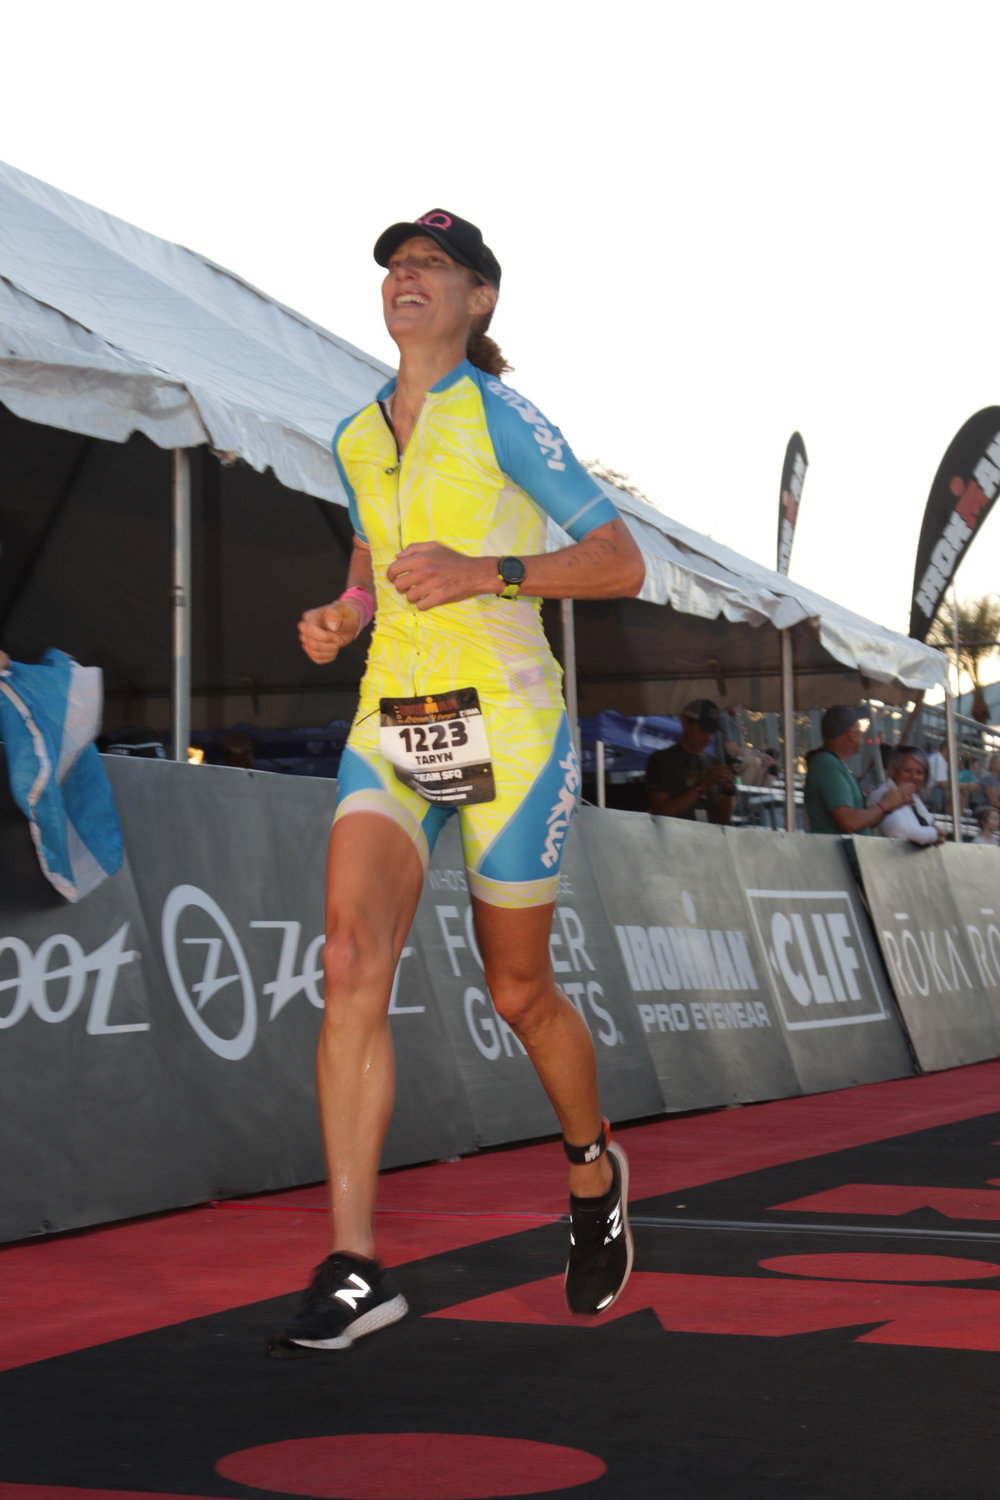 Realizing a goal ten years in the making, qualifying for Kona at Ironman Arizona, 2017.